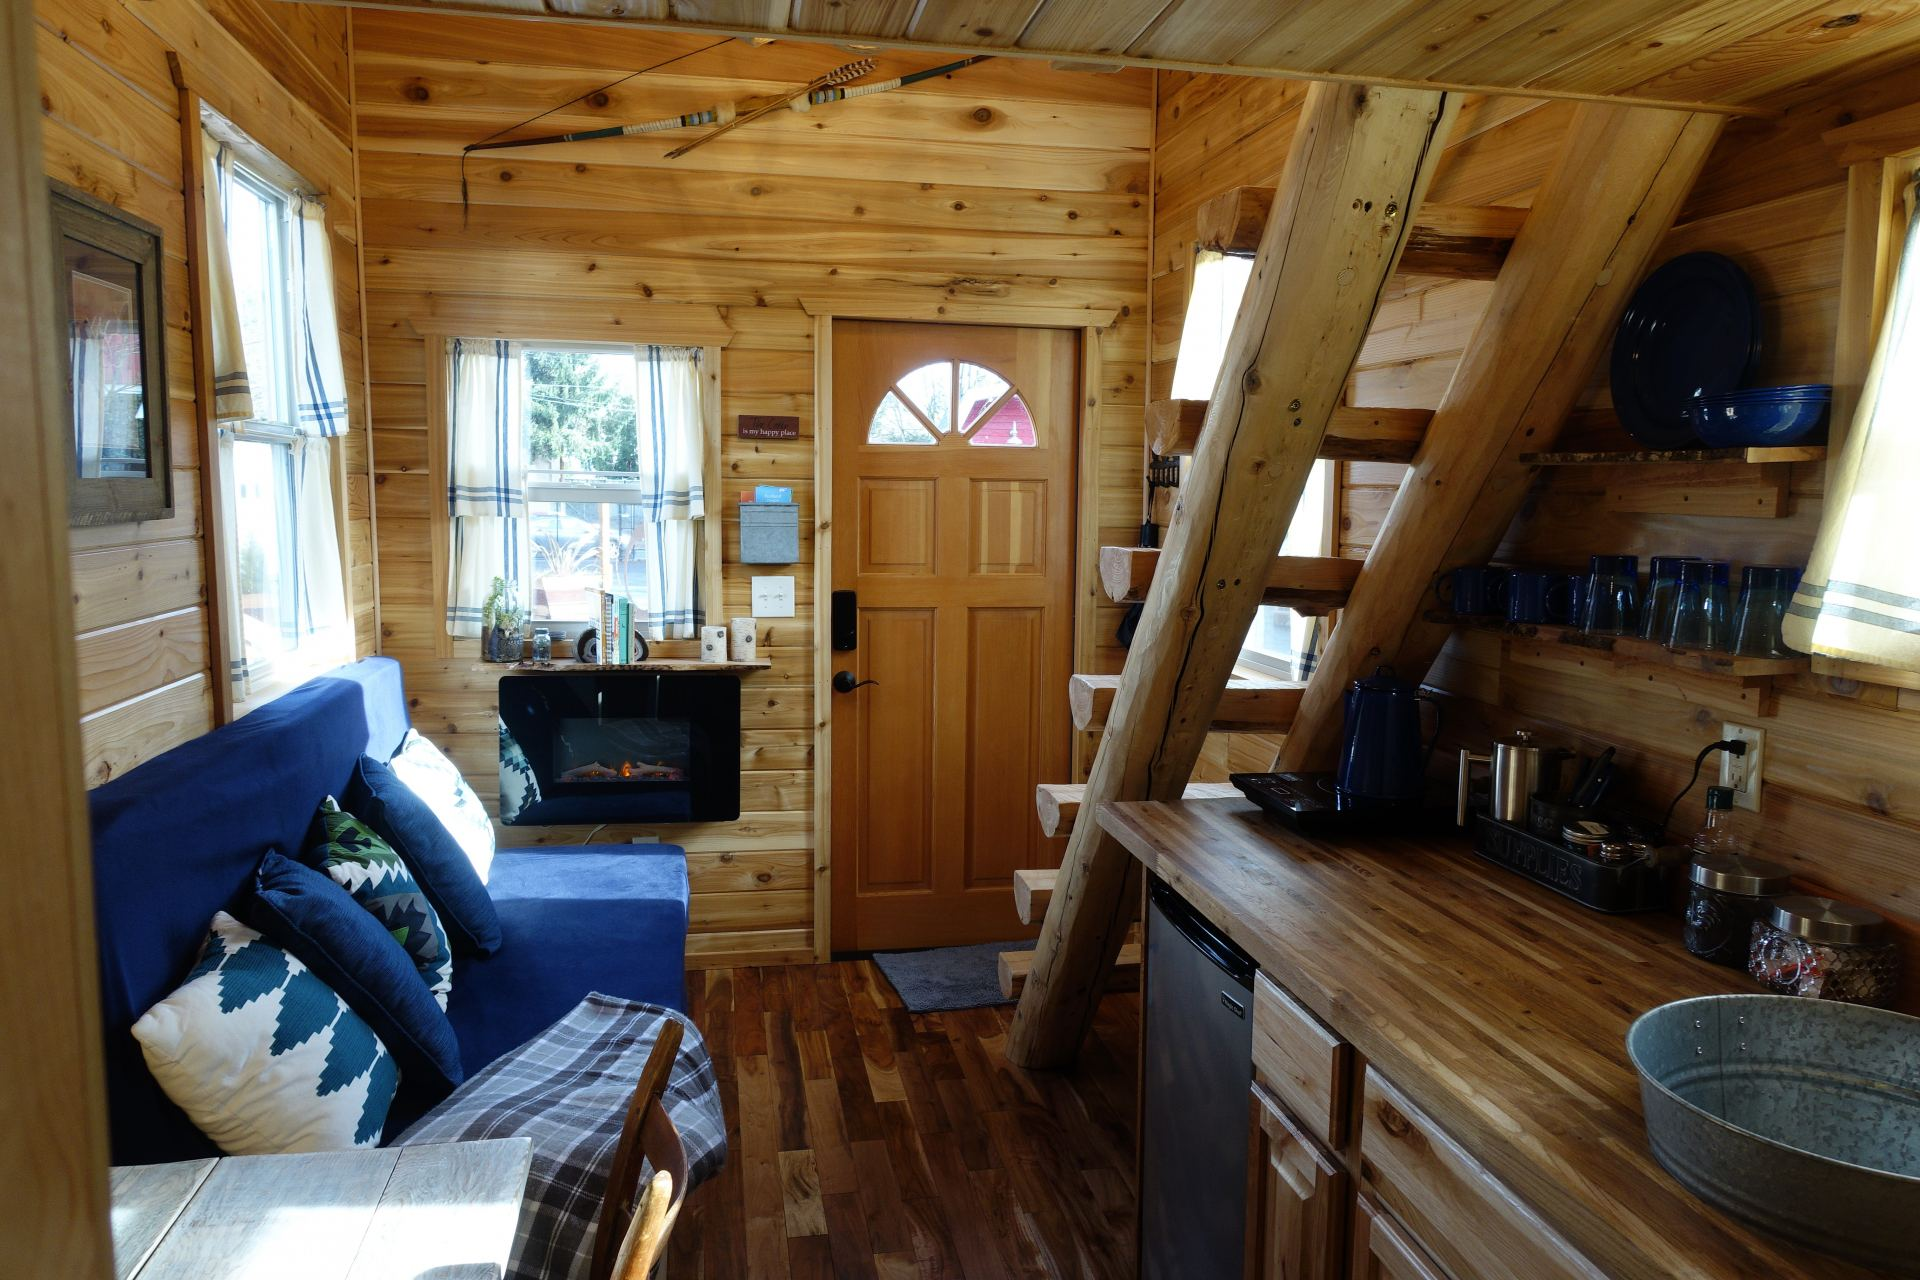 Tiny Log Home Designs: Tiny Log Cabin On Wheels Is Available For Rent In Portland